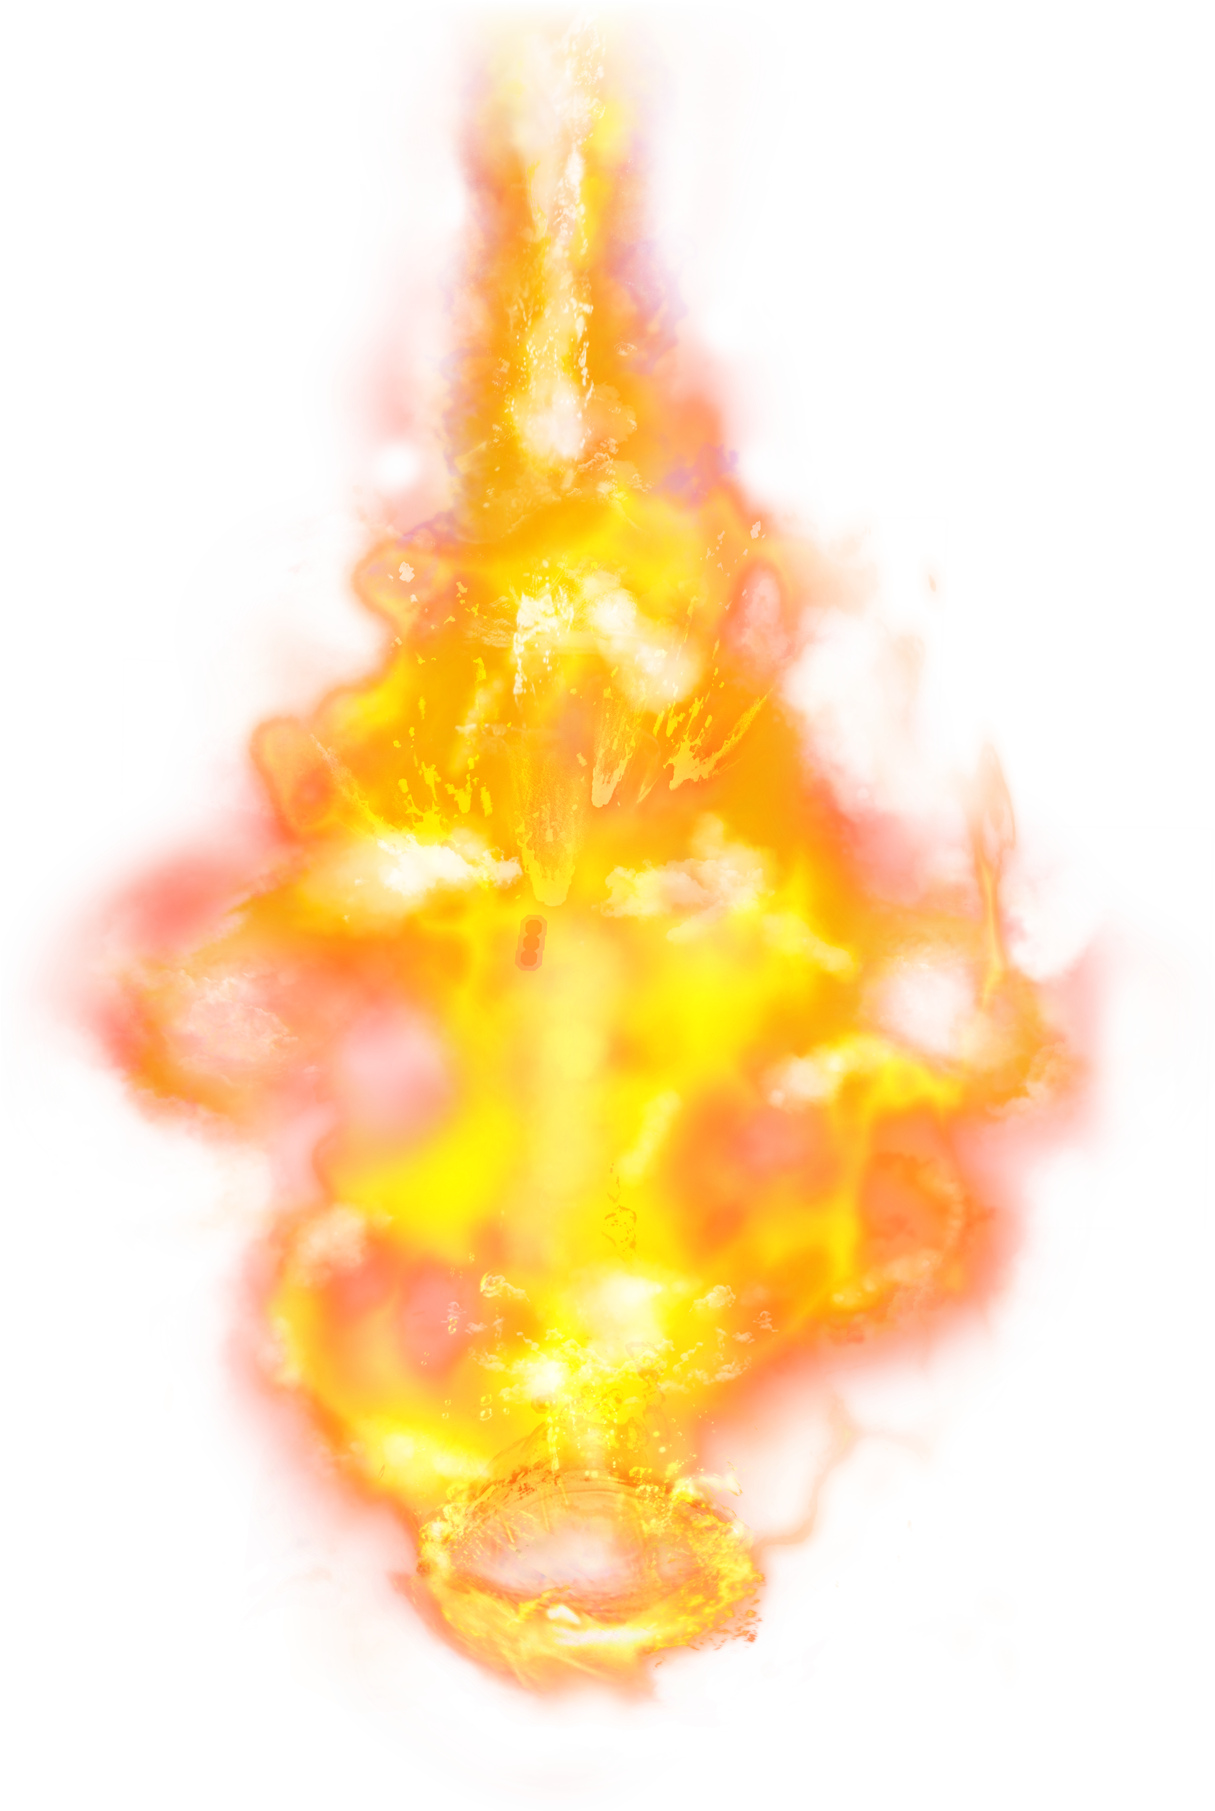 Dragon ball aura png. Frieza goku vegeta super